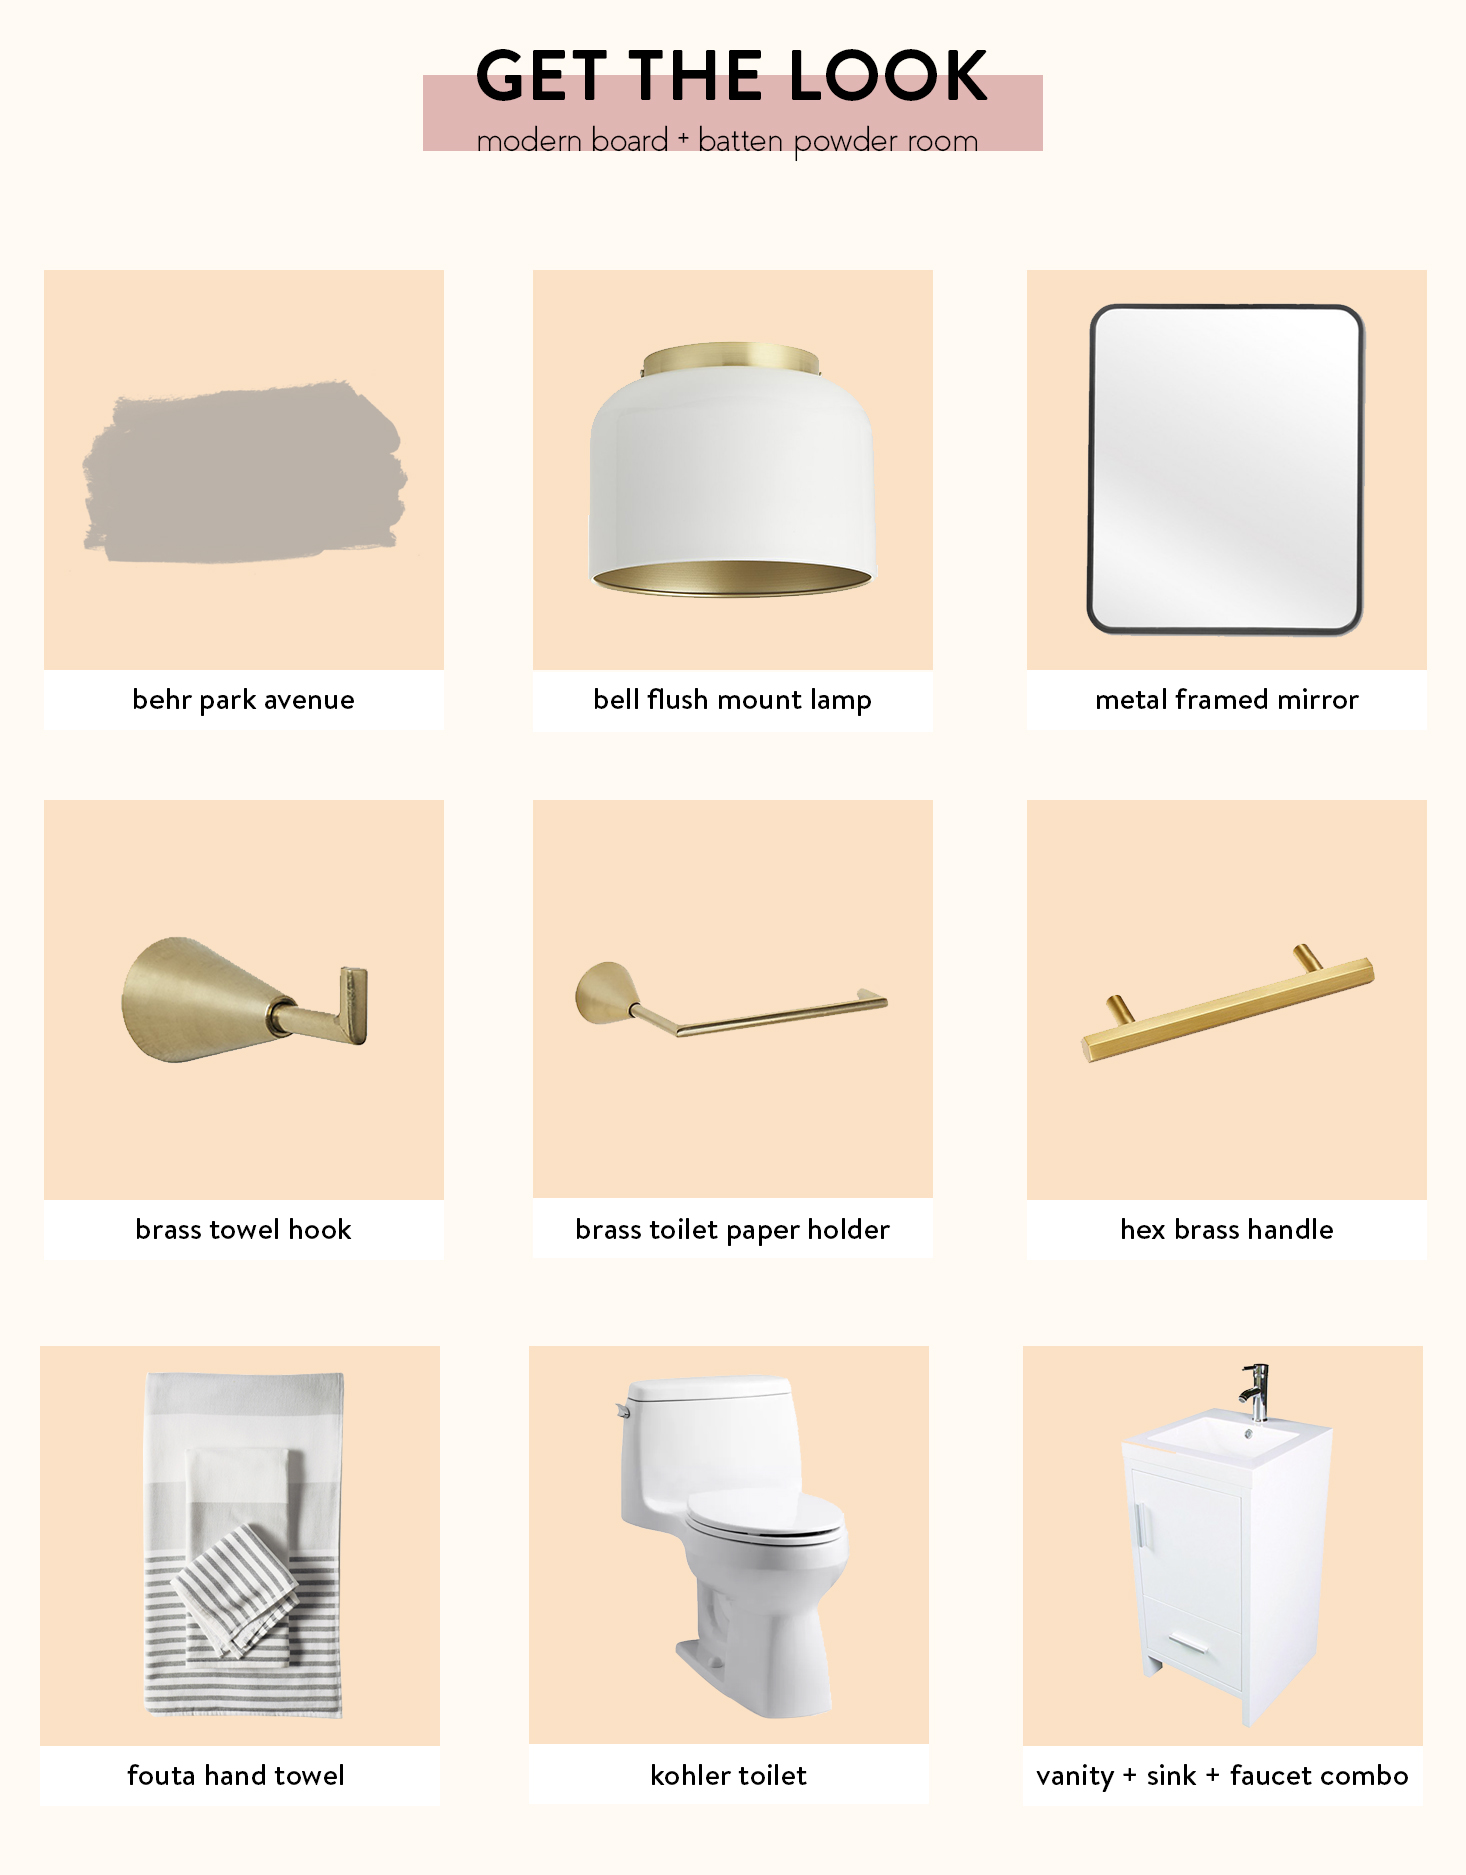 How To: Modern Board and Batten Powder Room | The Sweet Beast